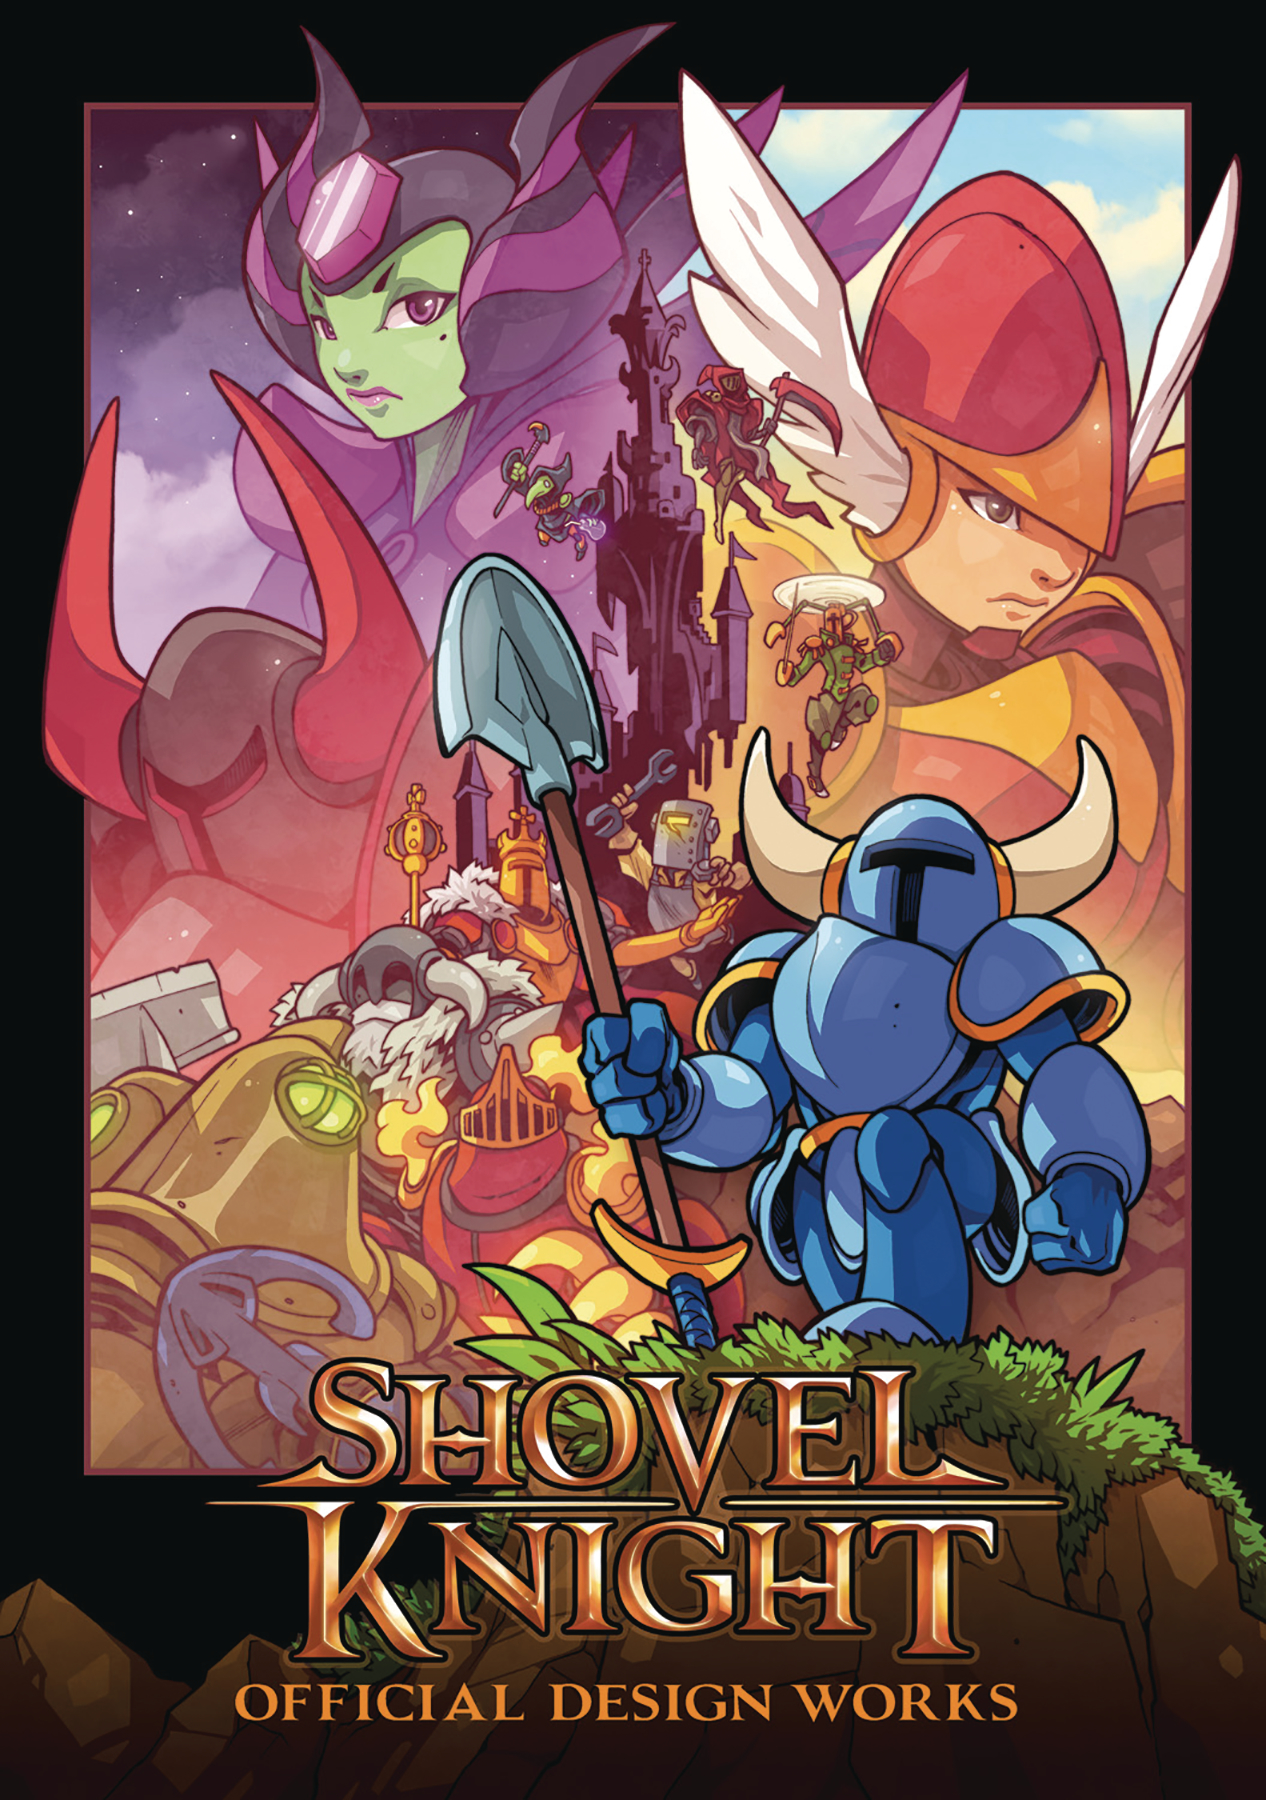 SHOVEL KNIGHT OFF DESIGN WORKS SC